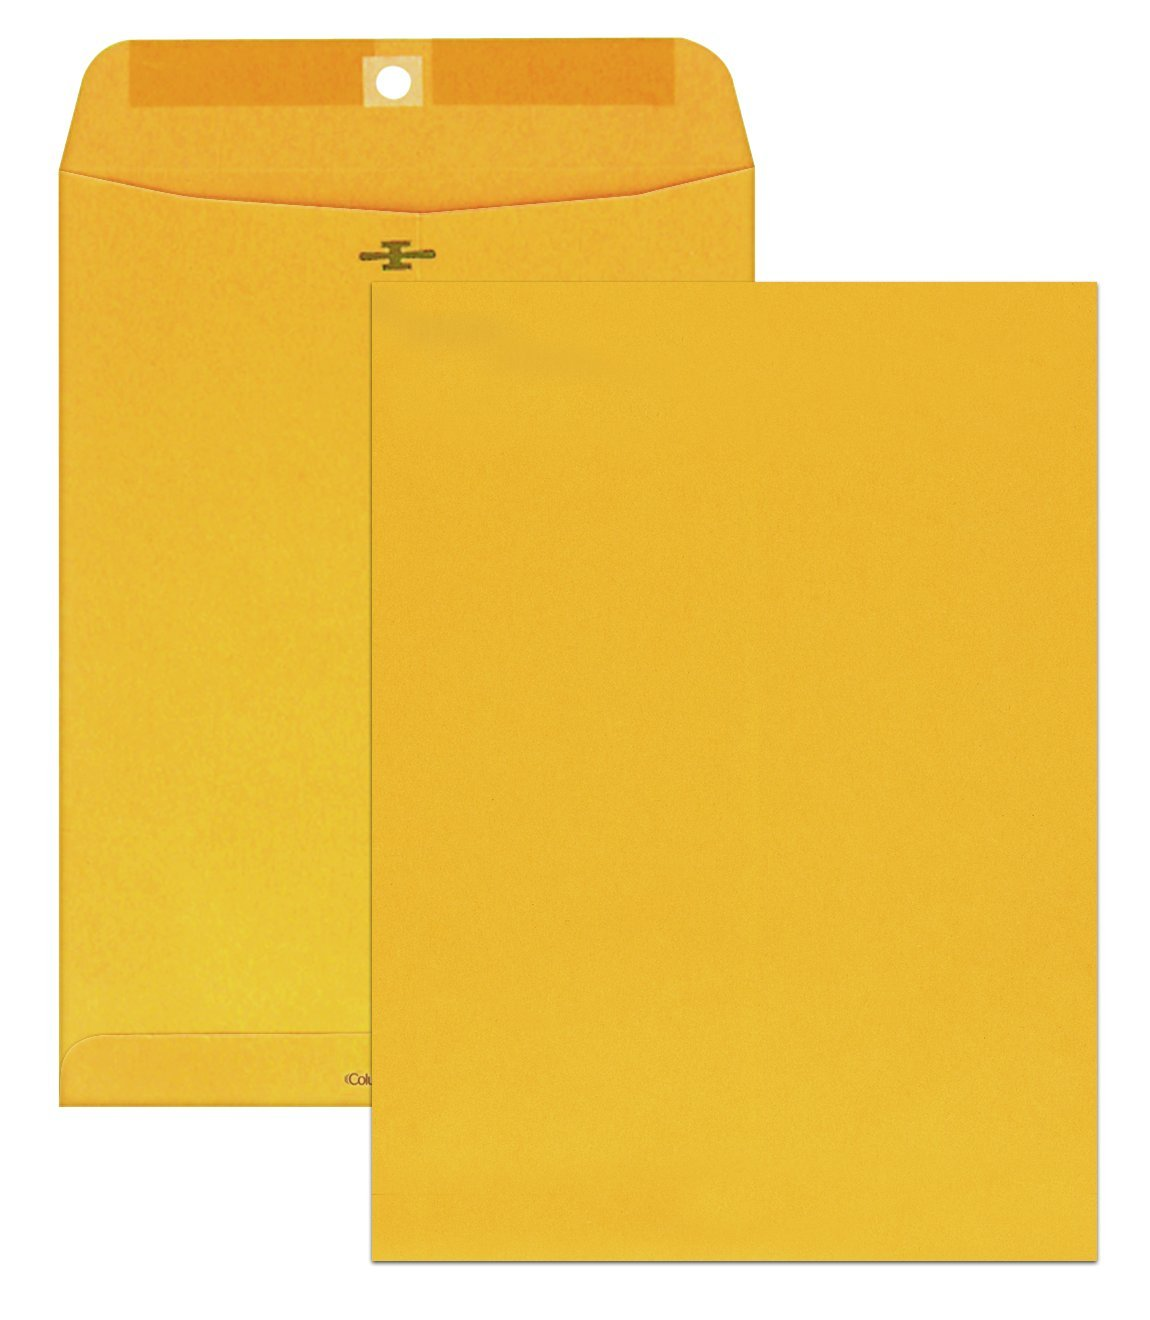 Mailing Envelopes | Amazon.com | Office & School Supplies ...